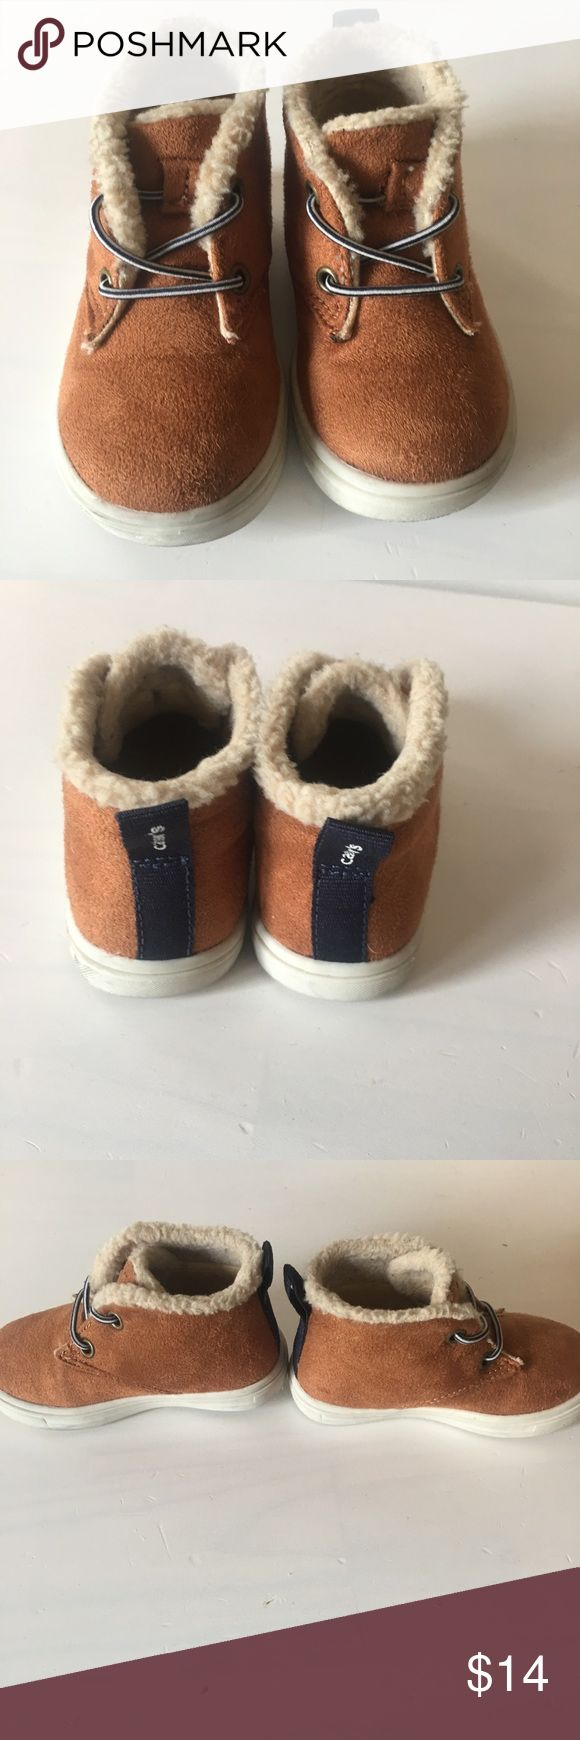 Size 5 toddler boys Timberland style boots Size 5 toddler boys Timberland style boots; Carter's brand Timberland Shoes Boots